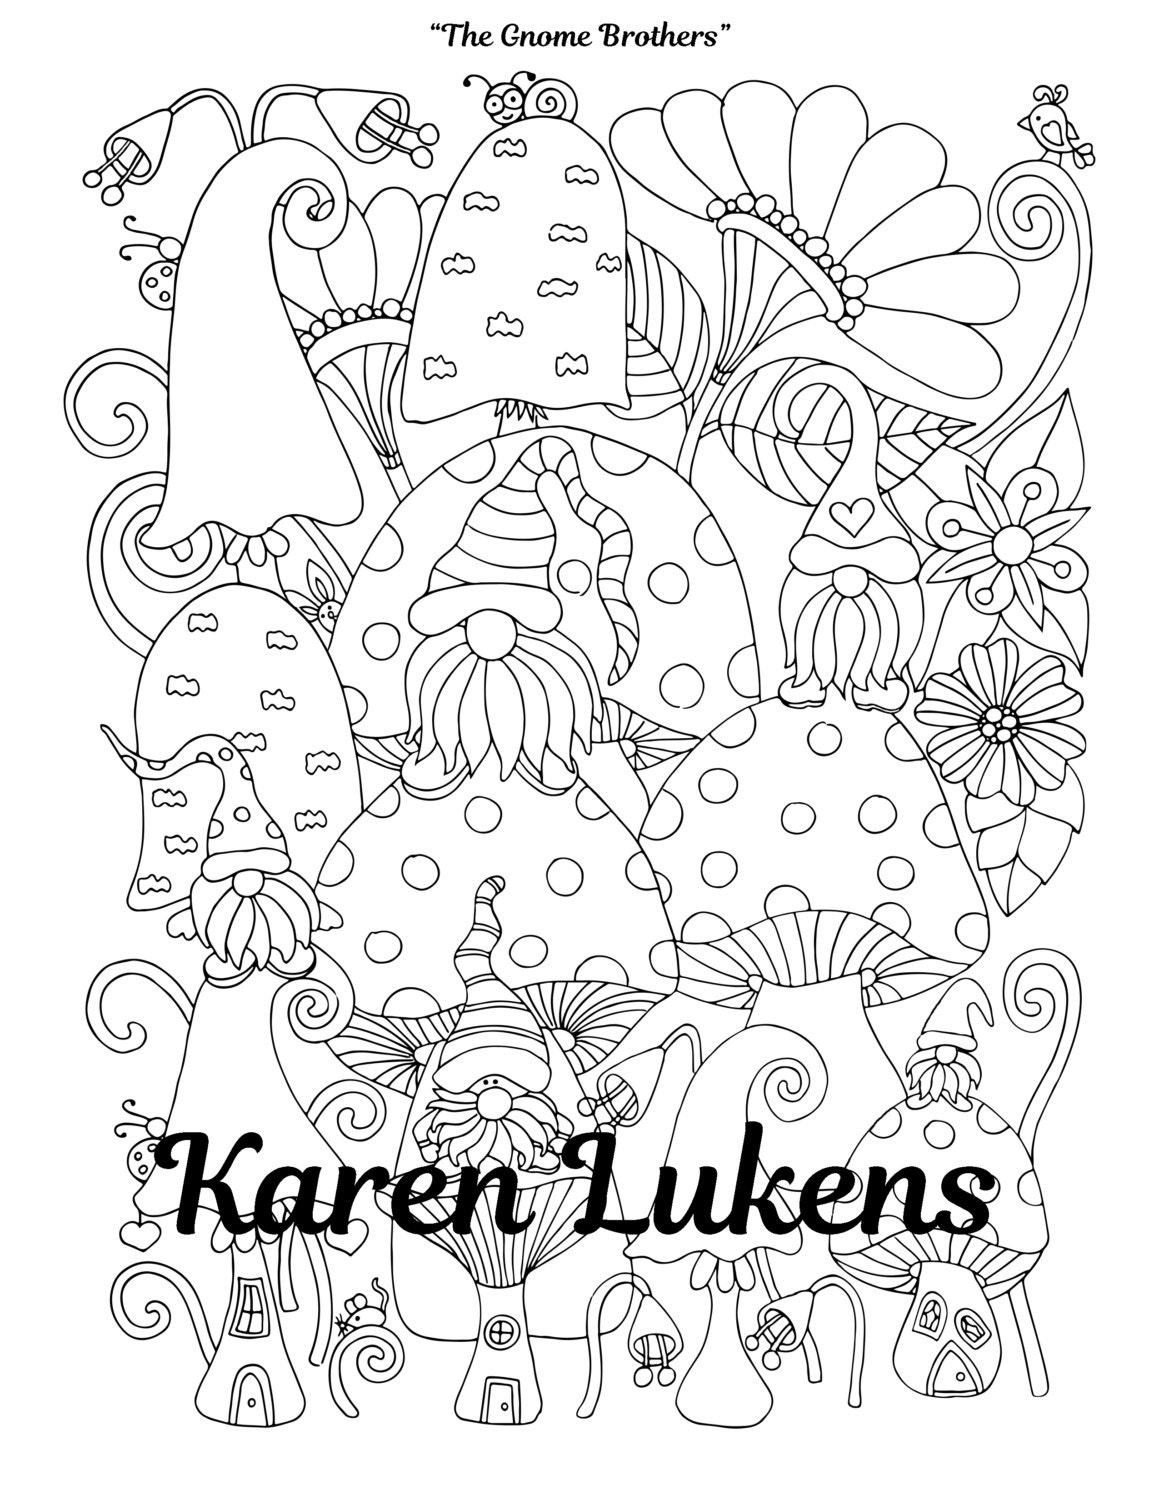 The Gnome Brothers 1 Adult Coloring Book Page Printable